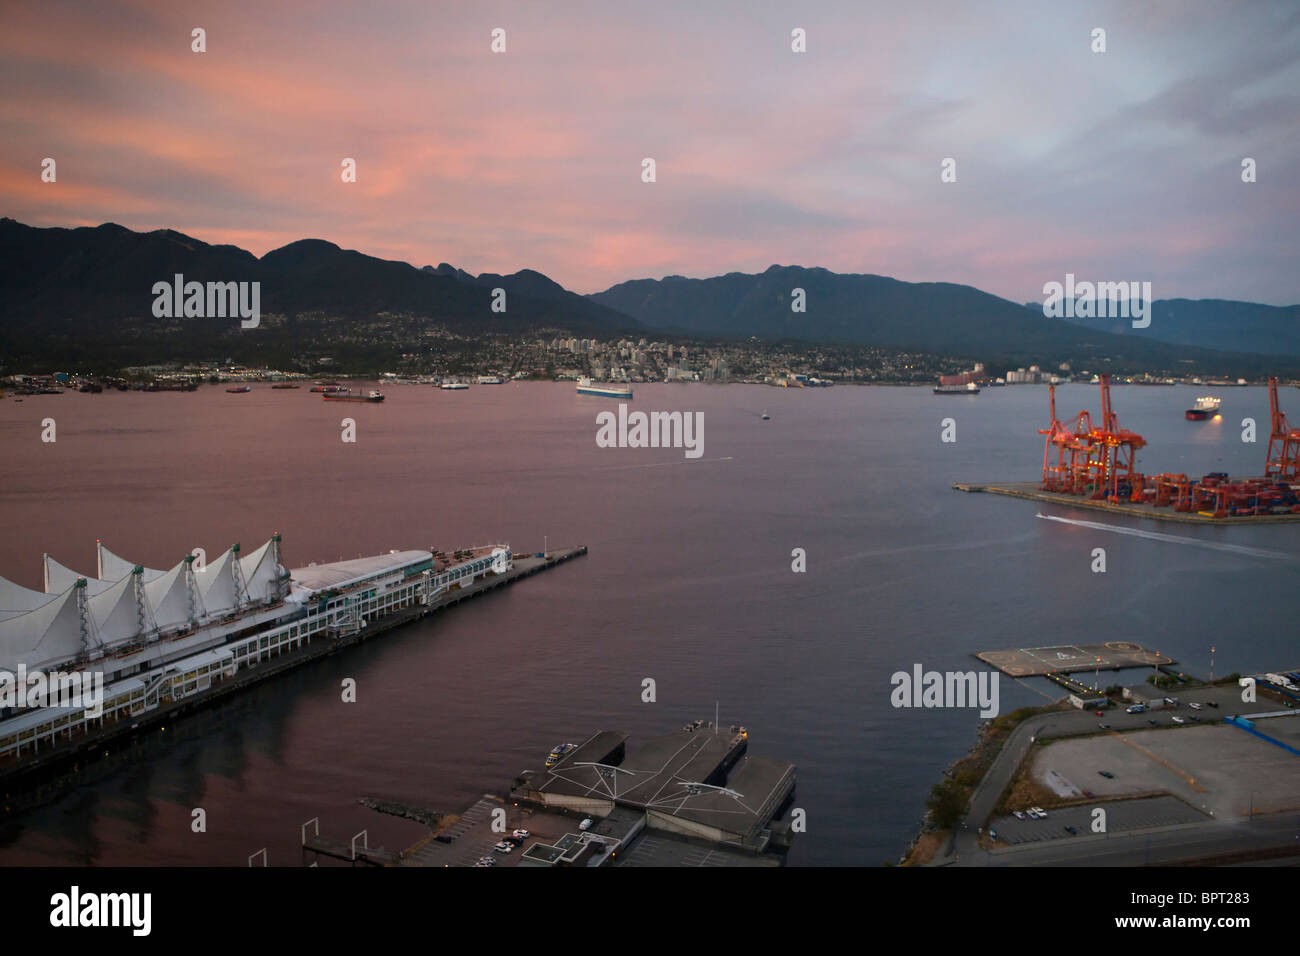 Aerial view of Canada Place and shipping terminals, Port of Vancouver, Vancouver, British Columbia, Canada - Stock Image